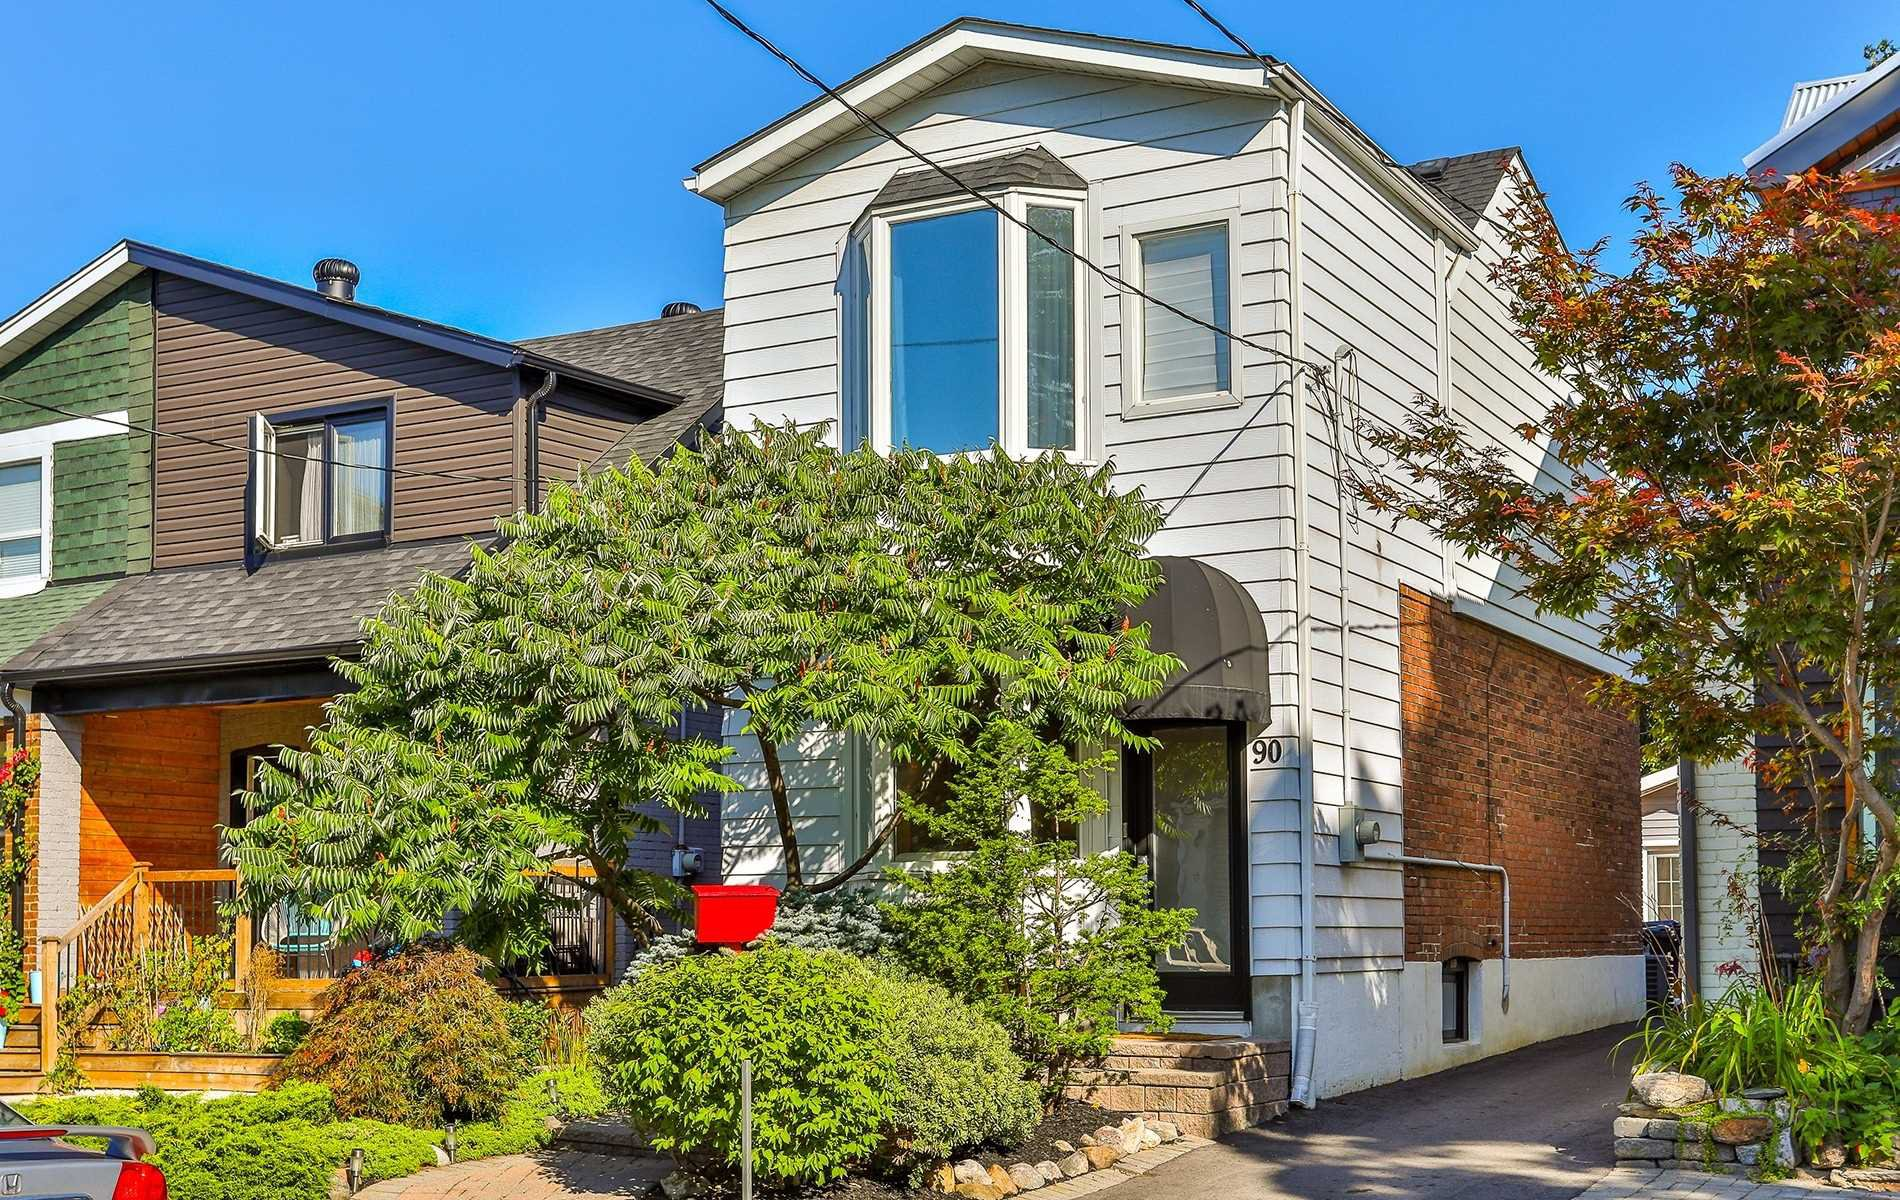 Main Photo: 90 Frater Avenue in Toronto: Danforth Village-East York House (2-Storey) for sale (Toronto E03)  : MLS®# E4564509